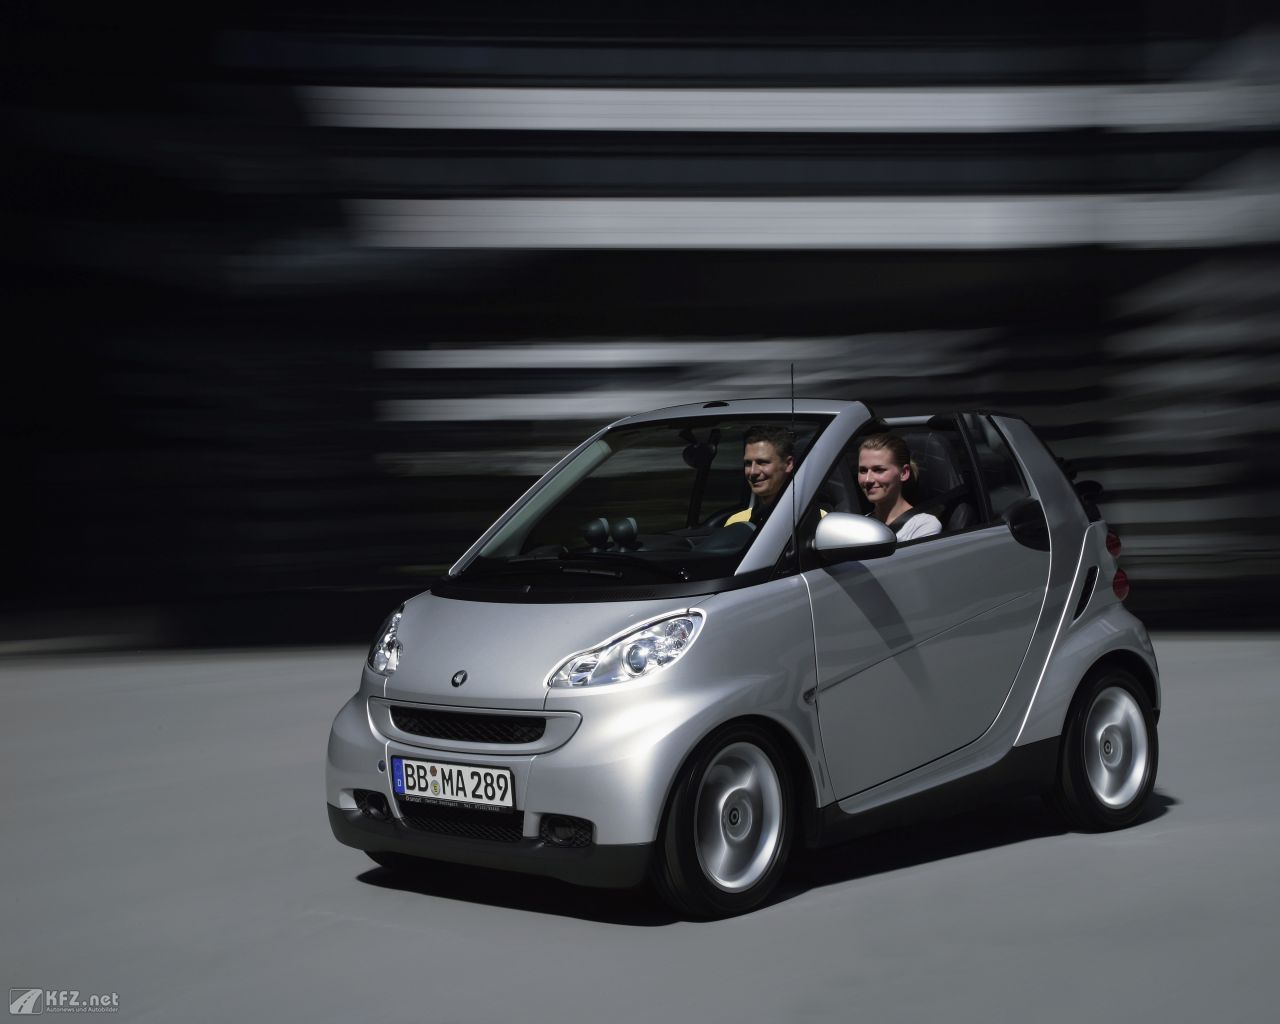 smart-fortwo-1280x1024-12